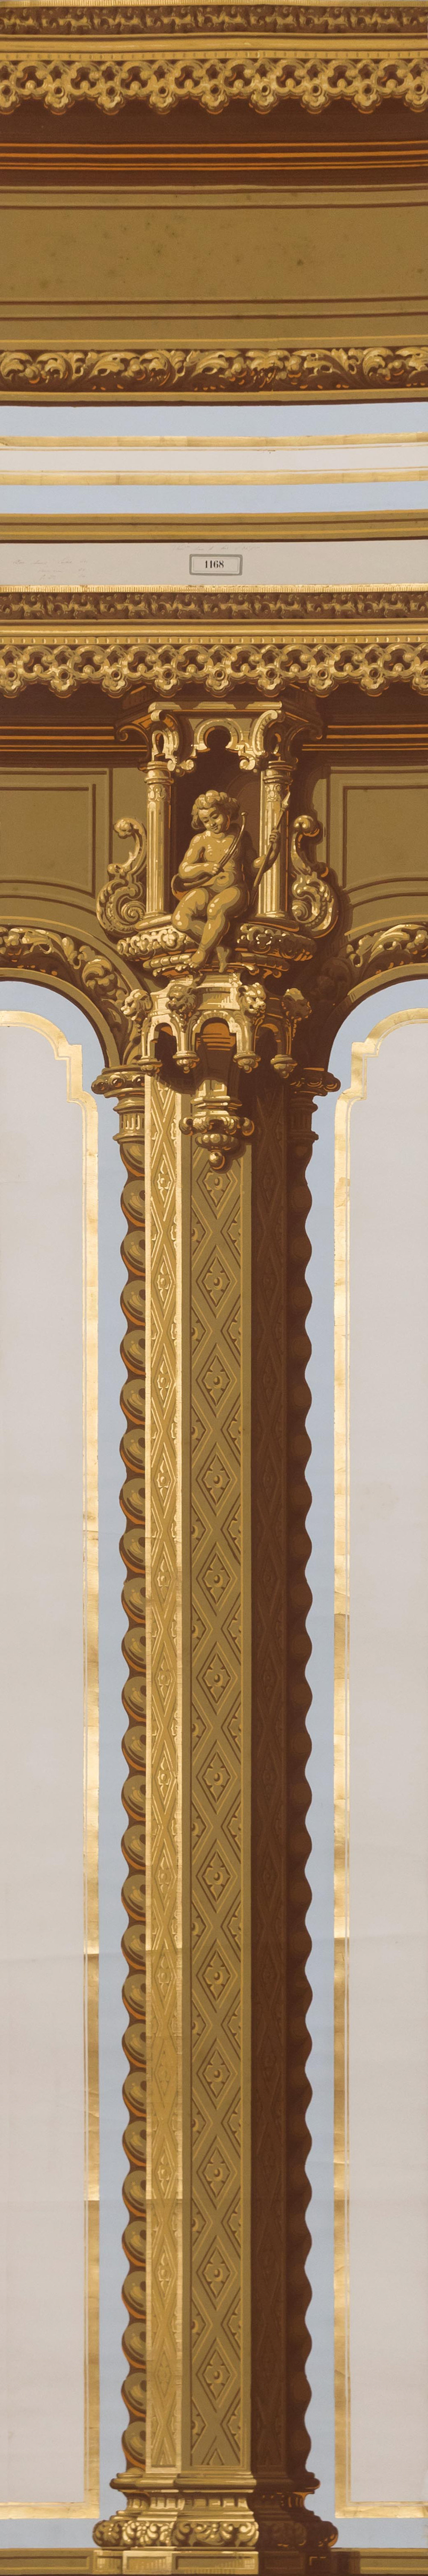 Column Design , gouache and gold leaf on paper, 125 x 20 1/4""